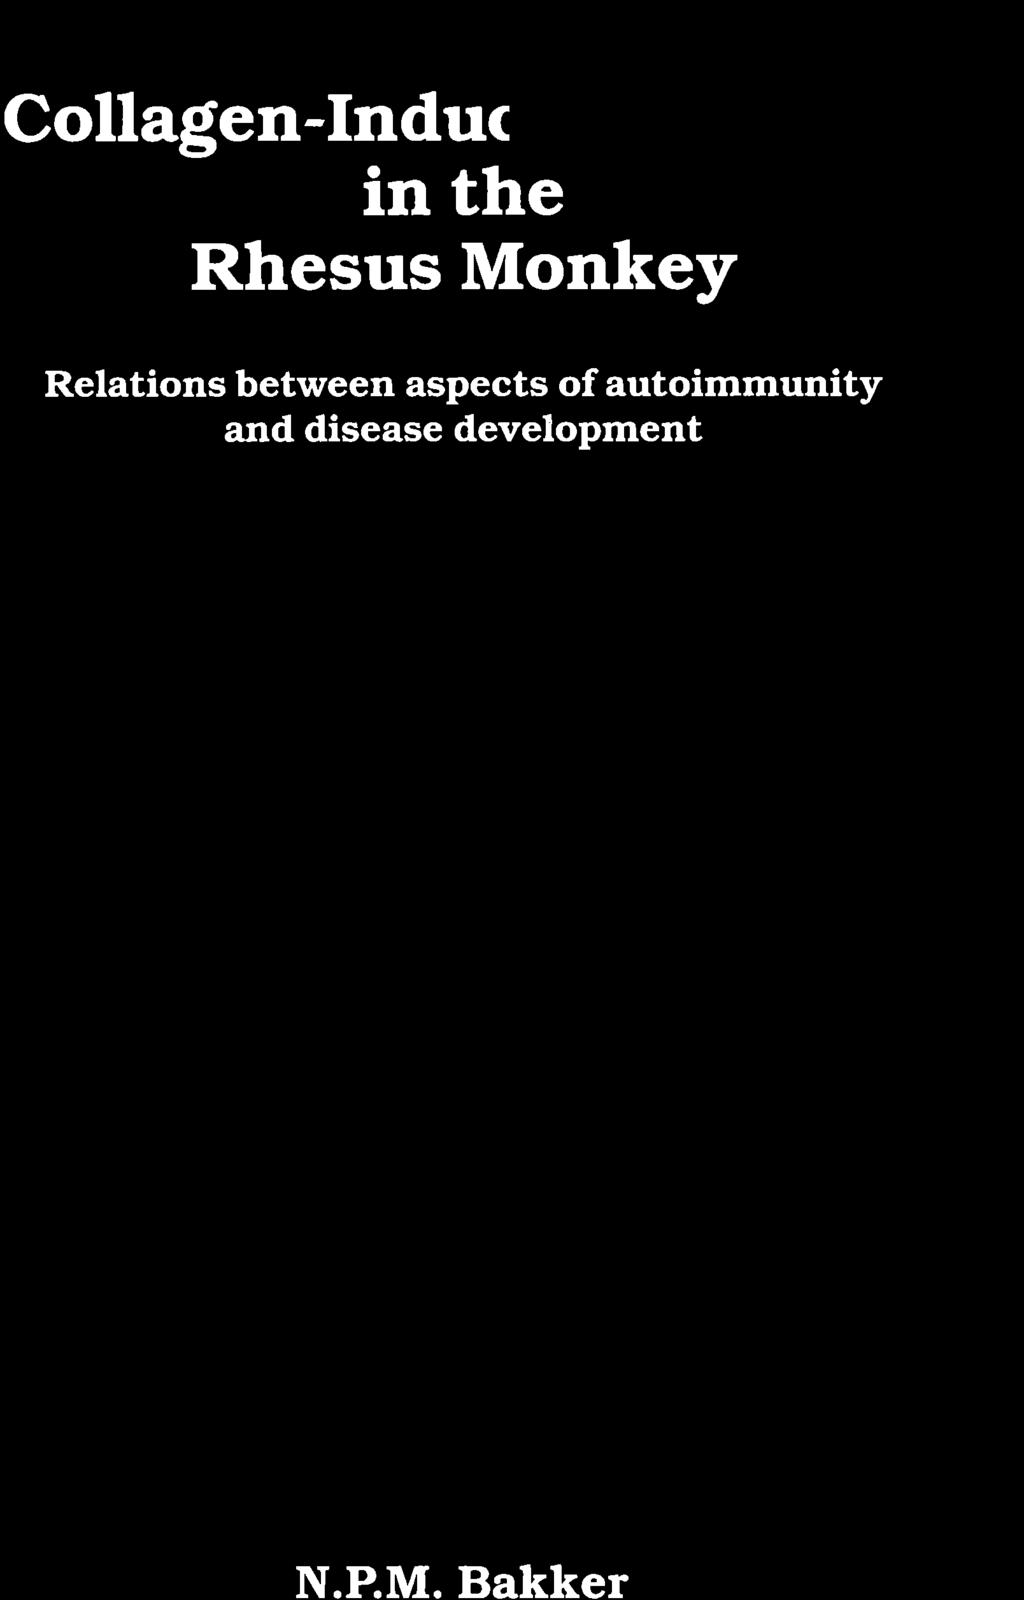 aspects of autoimmunity and